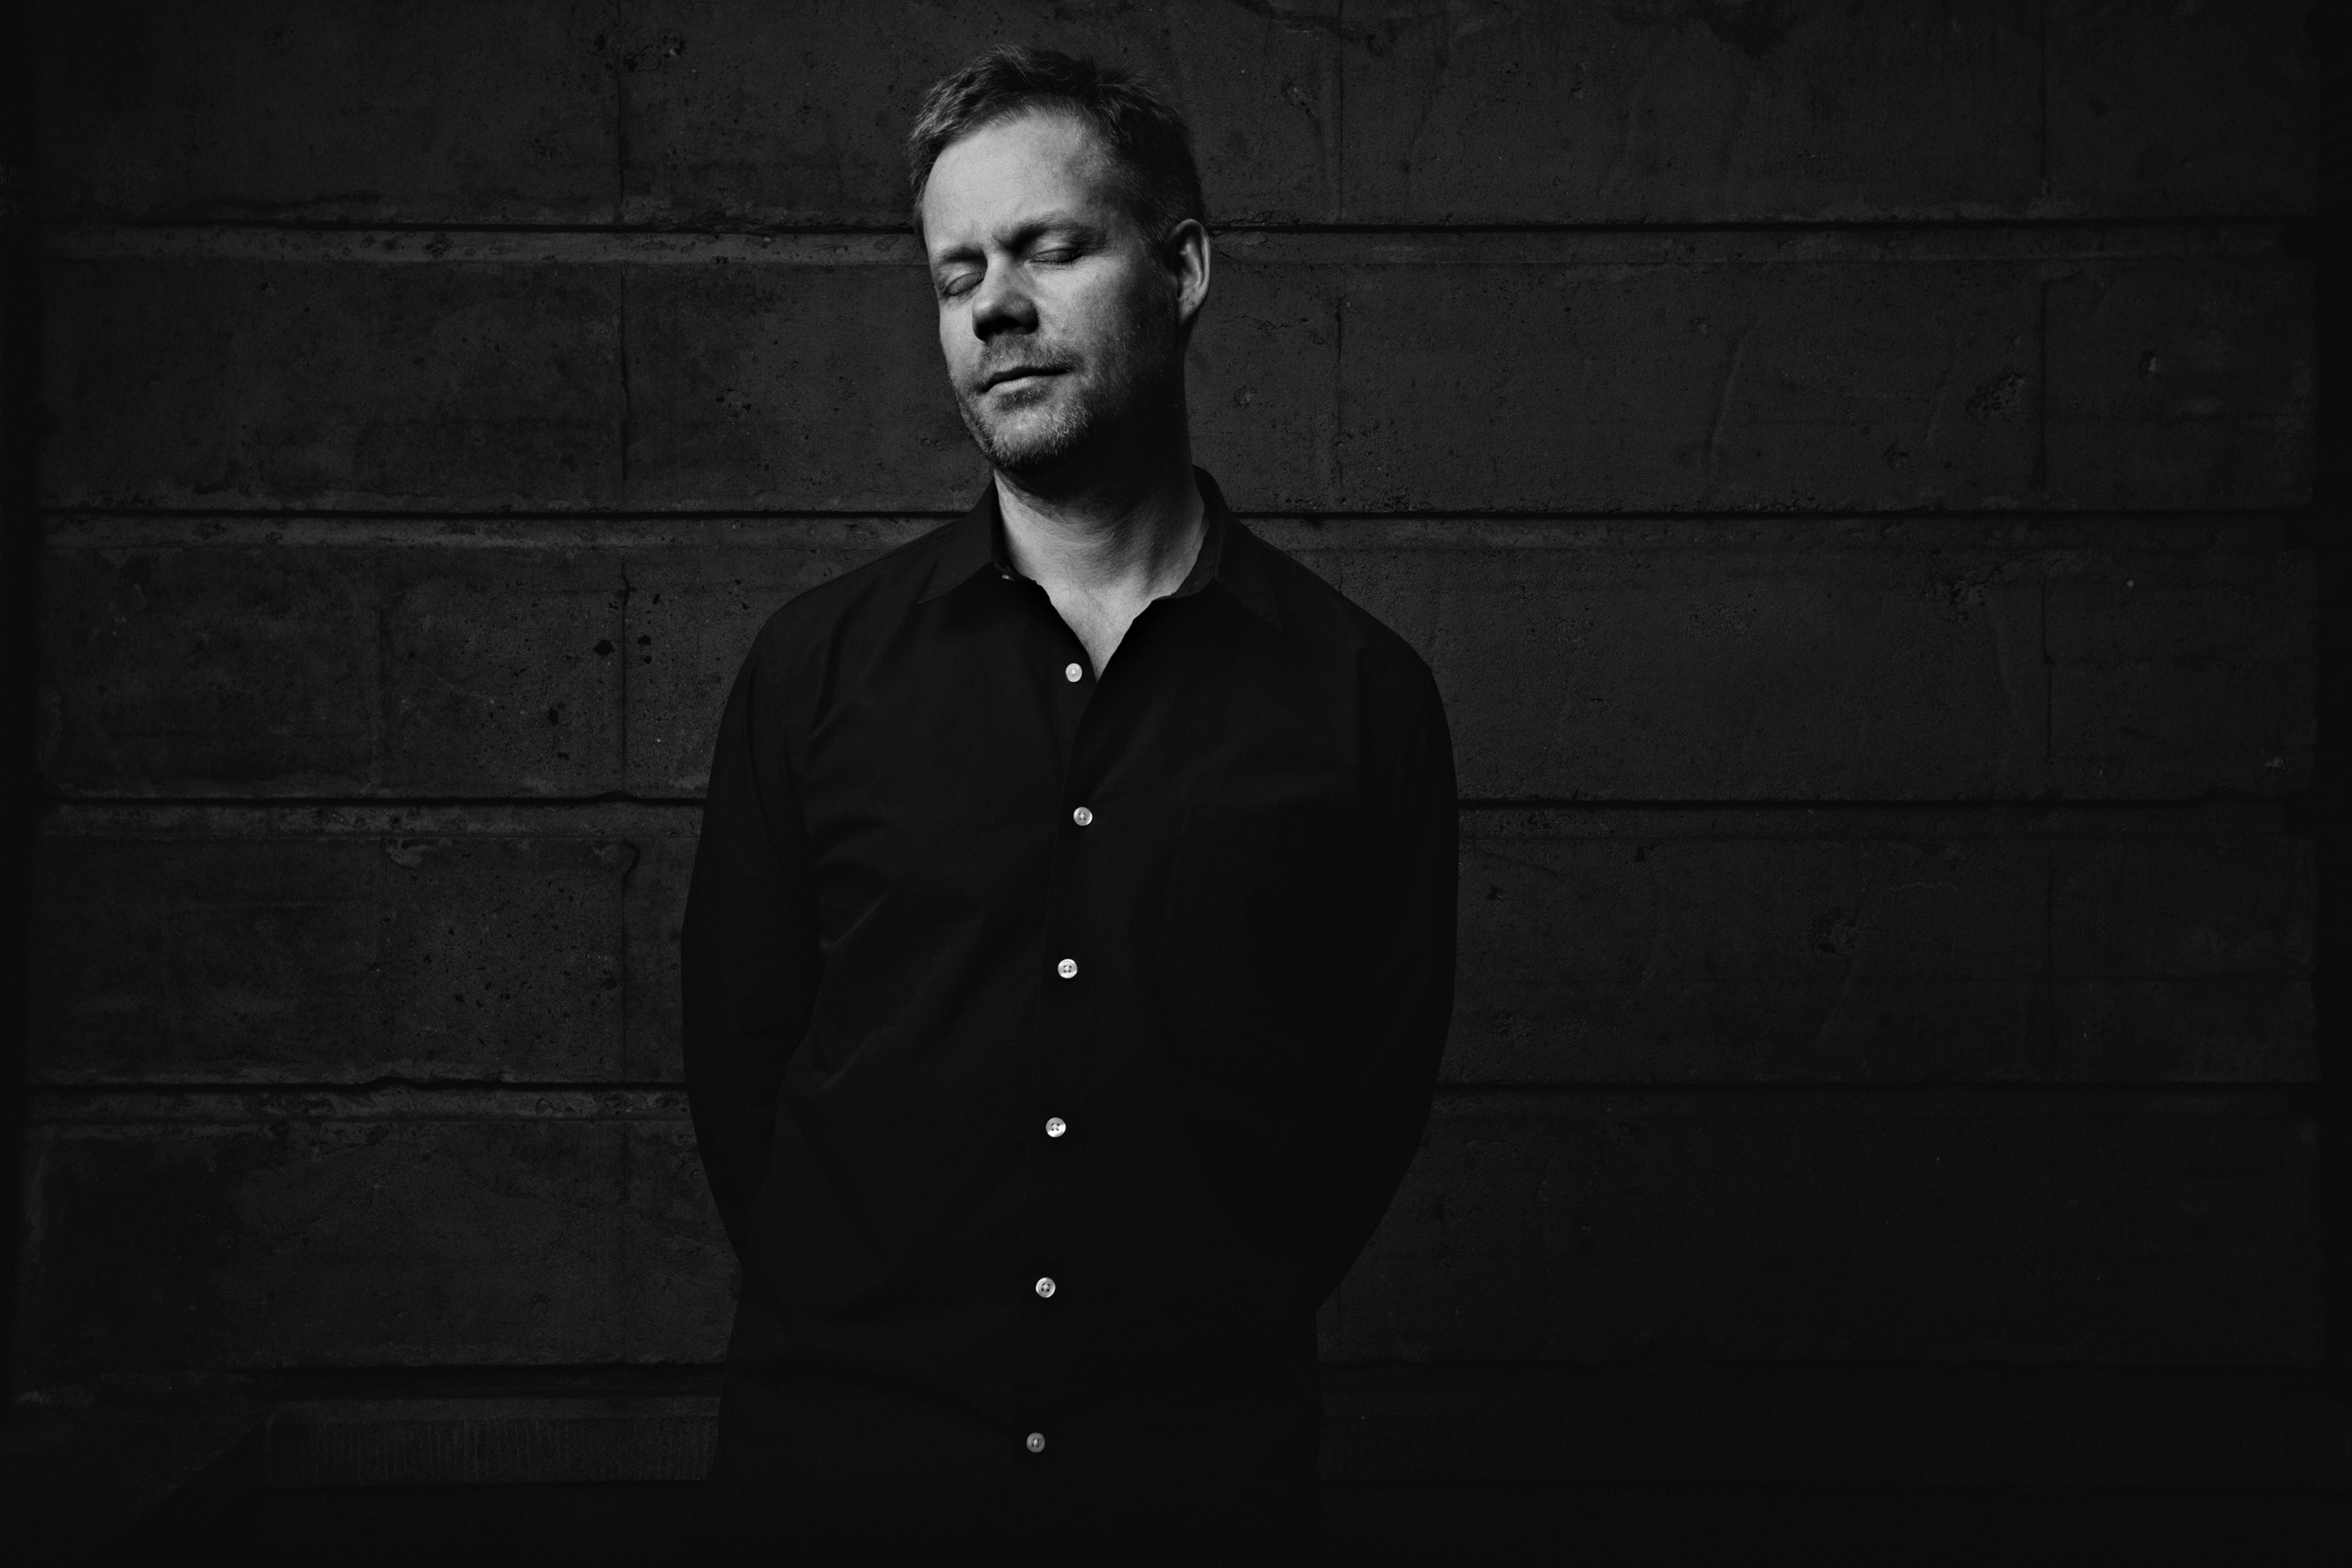 Max Richter has composed an 8-hour album devoted entirely to sleep.